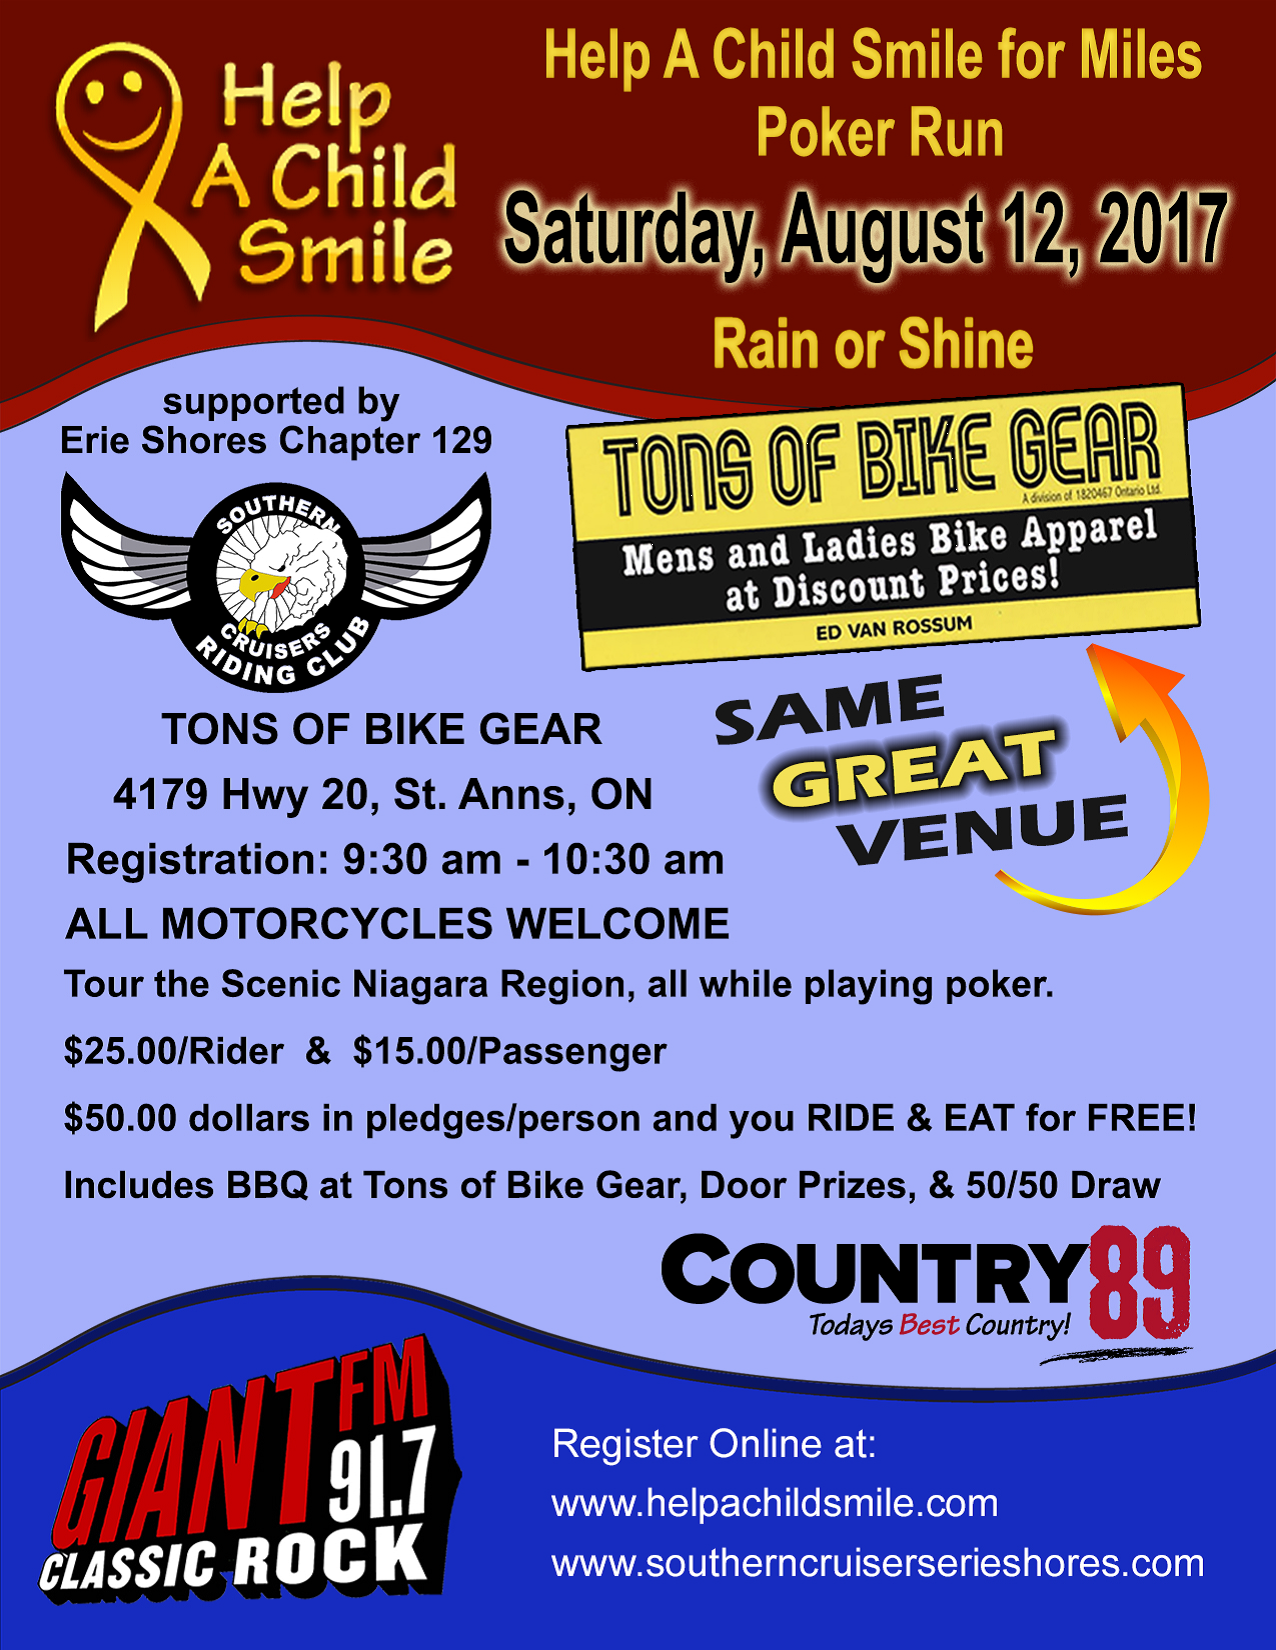 Help a Child Smile for Miles Poker Run